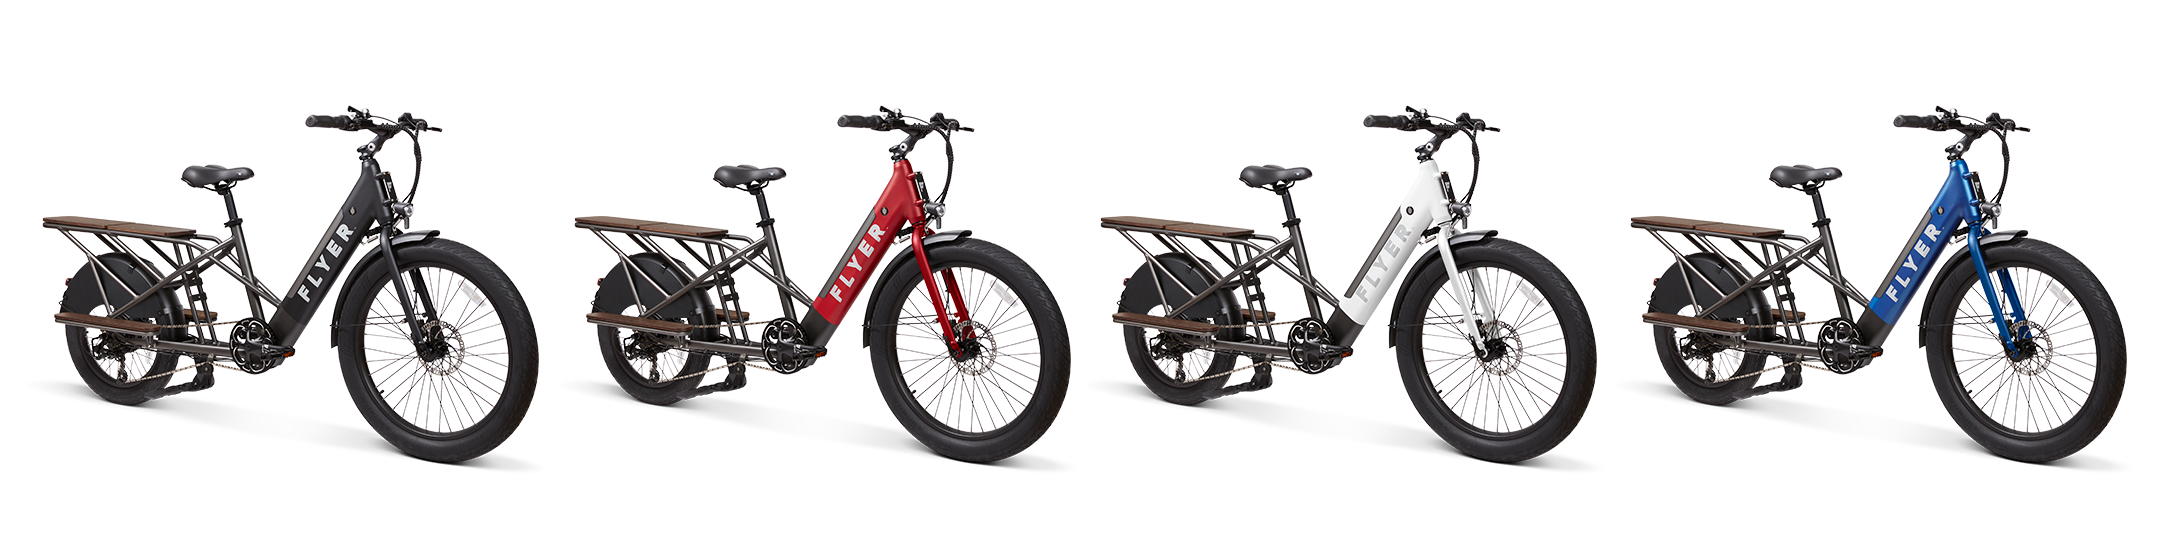 Flyer L885 electric cargo bikes in black red white and blue